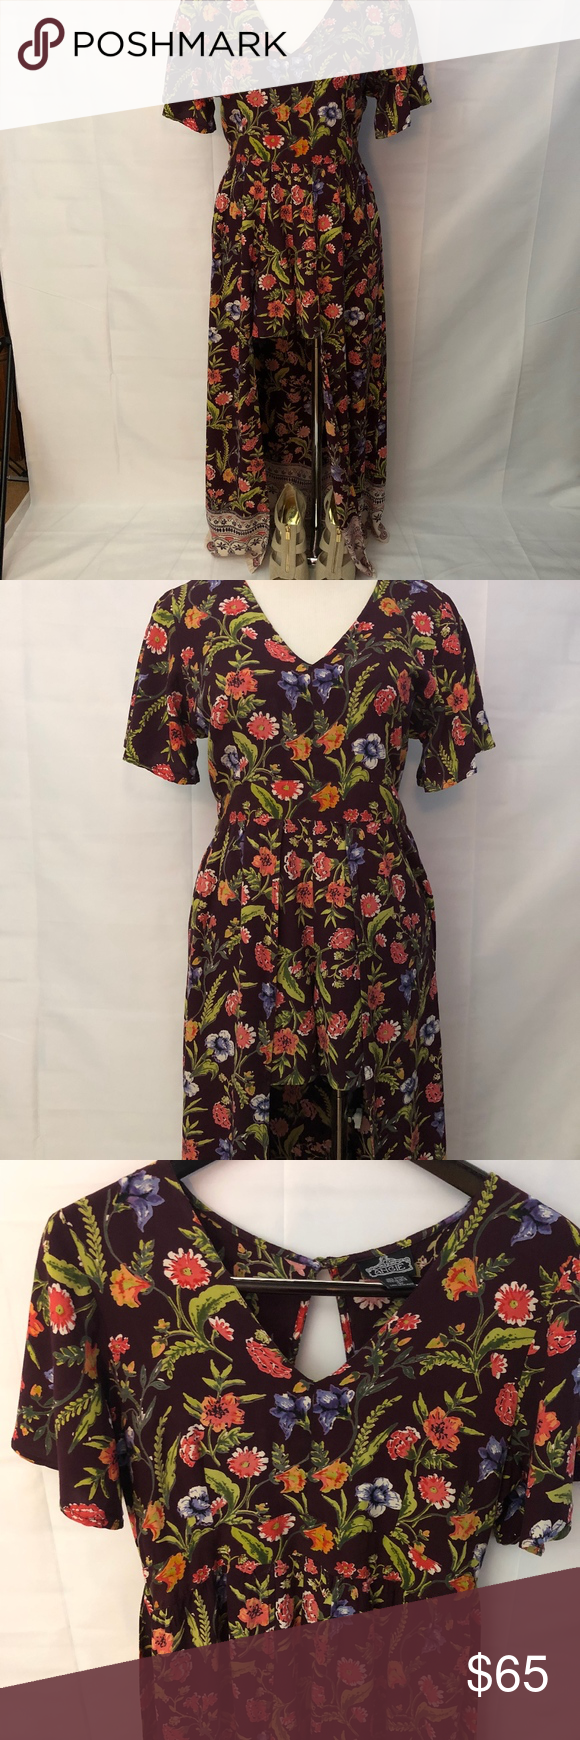 09de46742916 Angie Floral Maxi Romper Dark Maroon. Size Large Just in time for music  festival season